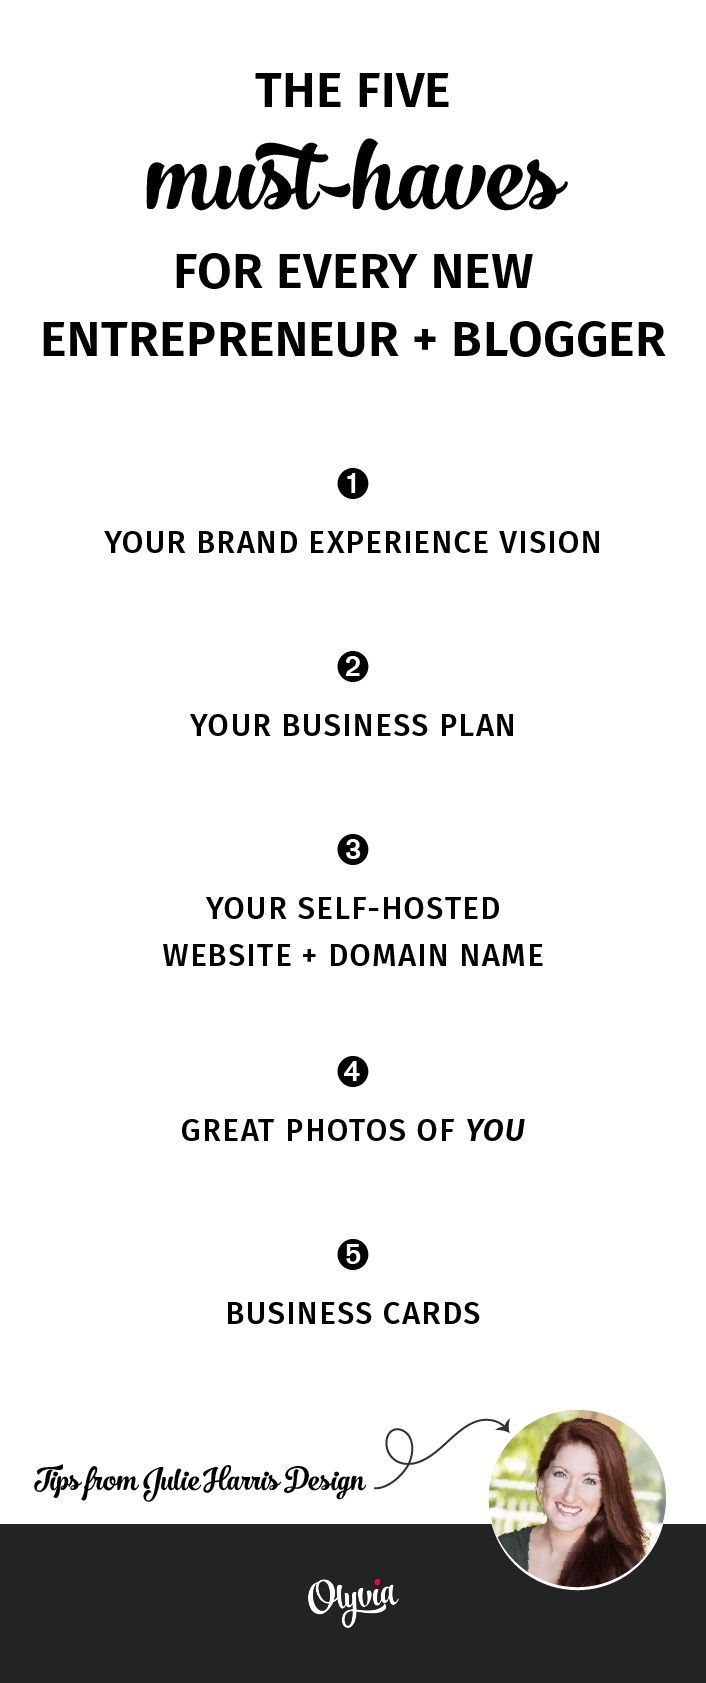 5 top branding + marketing tips for your new business or blog! Click for even more tips + resources. From Julie Harris Design + Olyvia.co